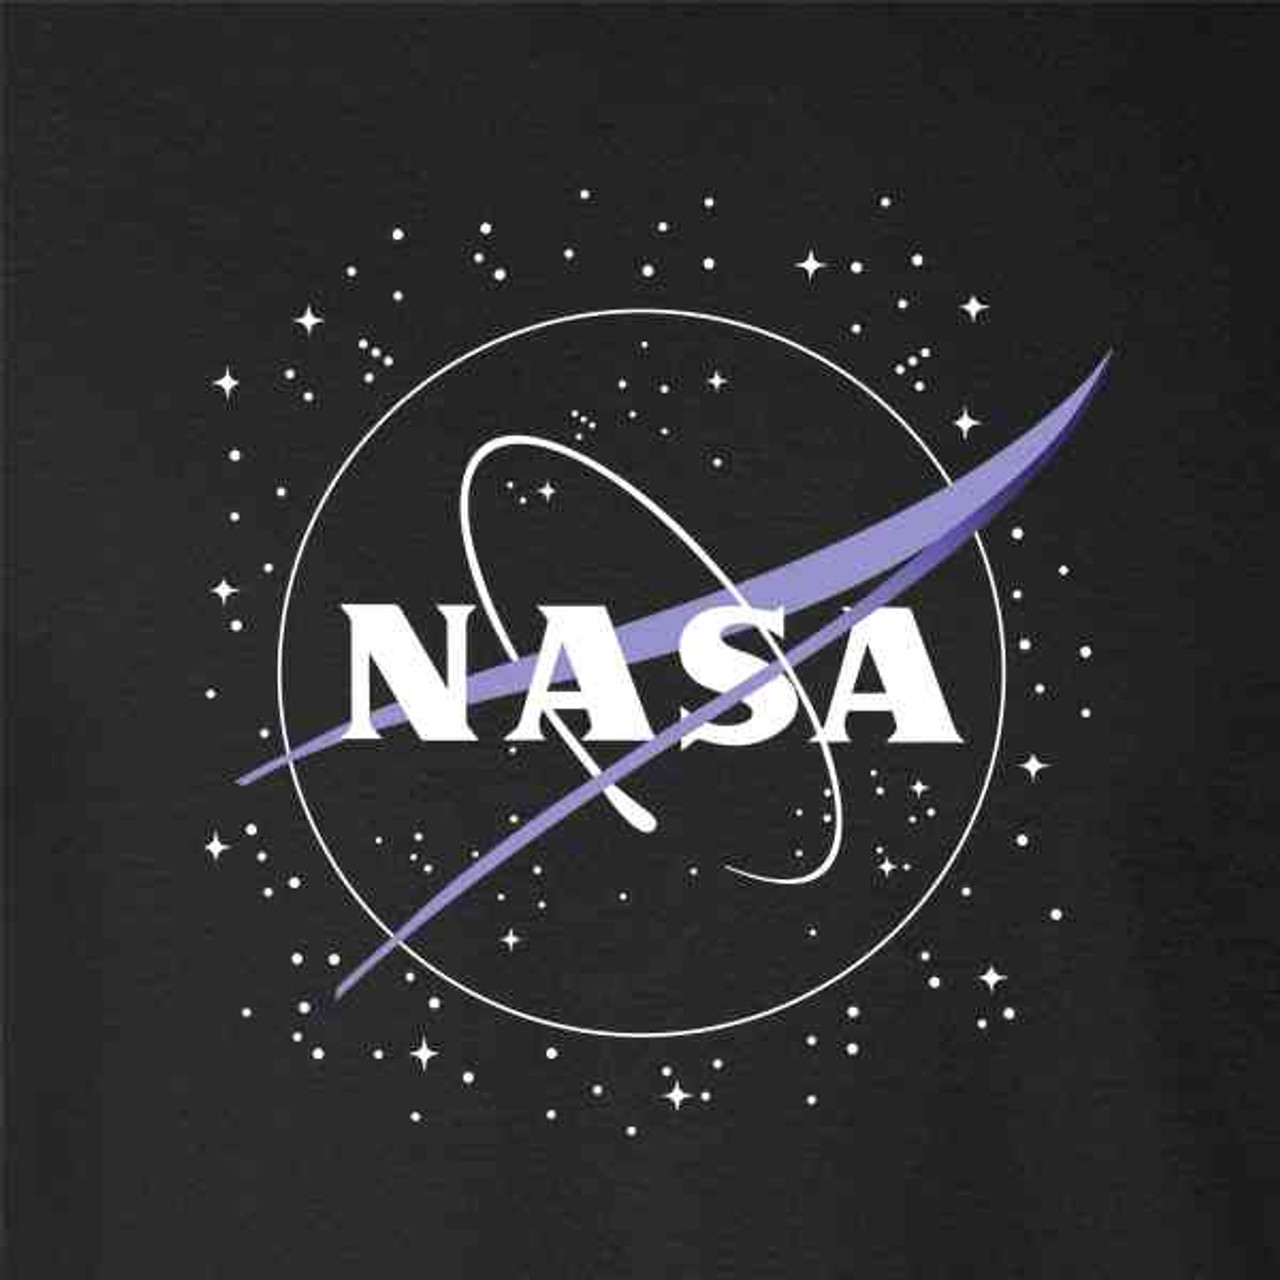 f1bc0d7e666 NASA Approved Meatball Logo With Stars - Pop Threads